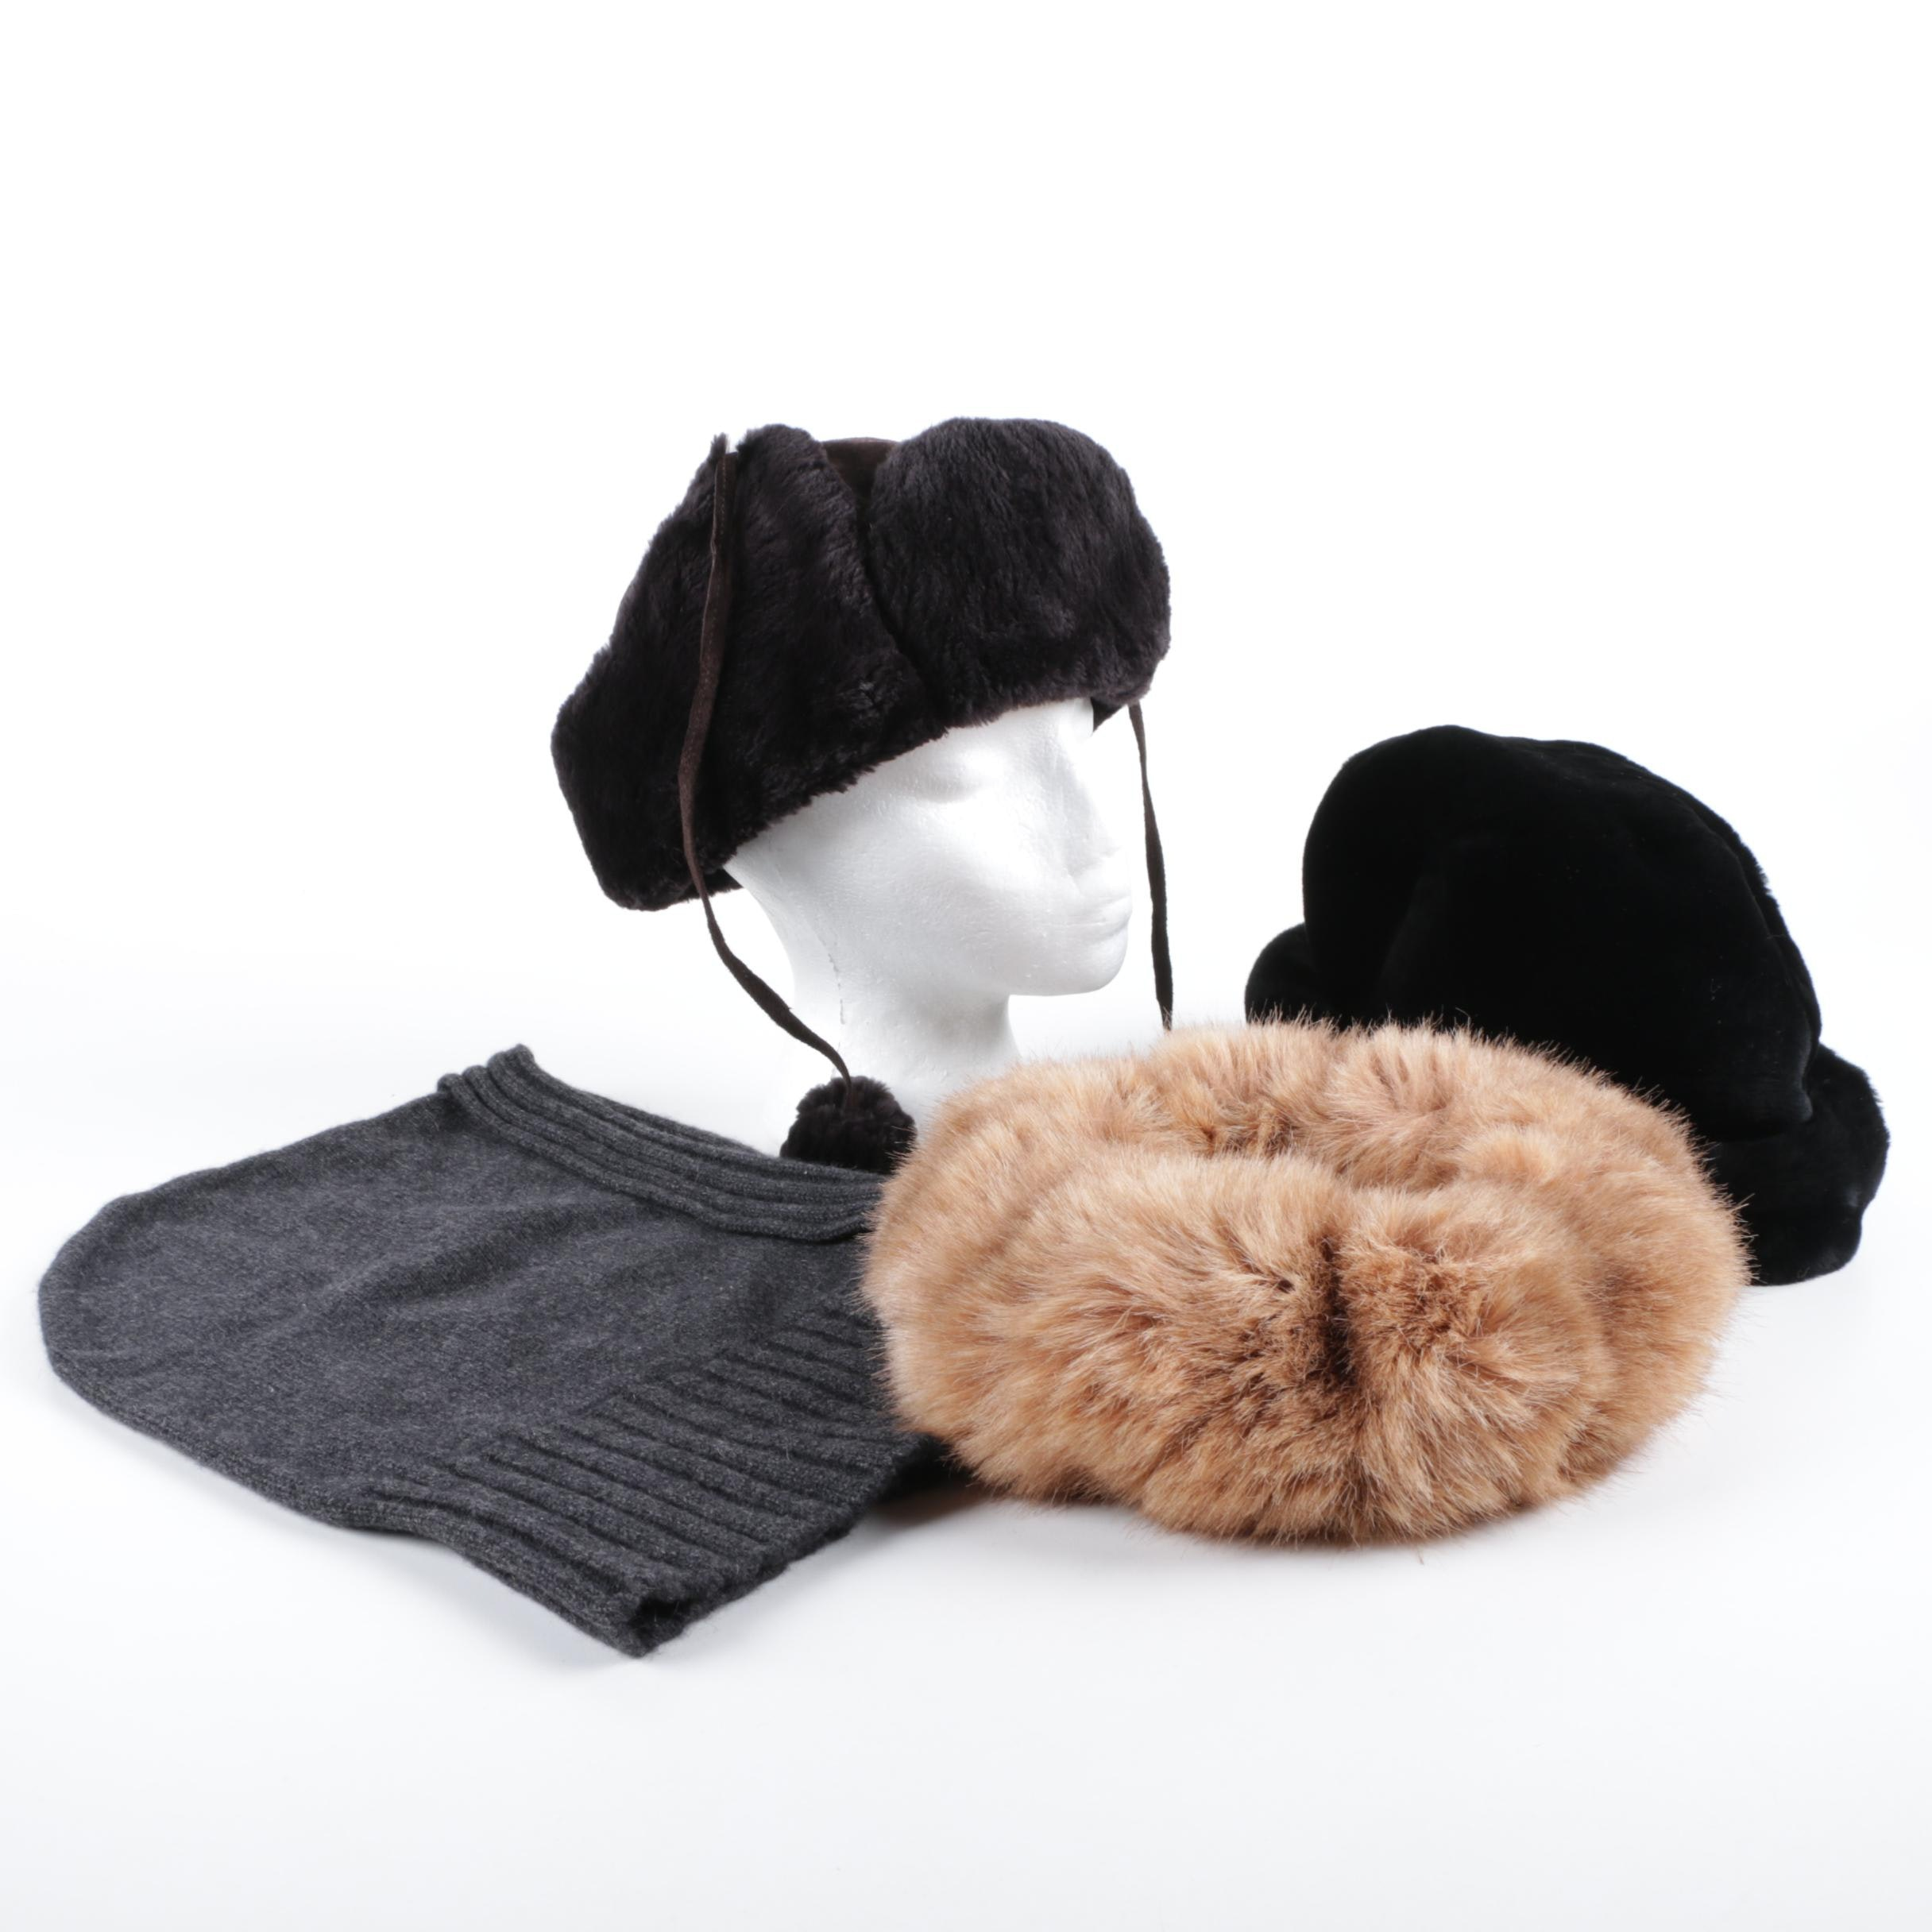 Winter Fur and Cashmere Hats and Accessories Including Conte of Florence